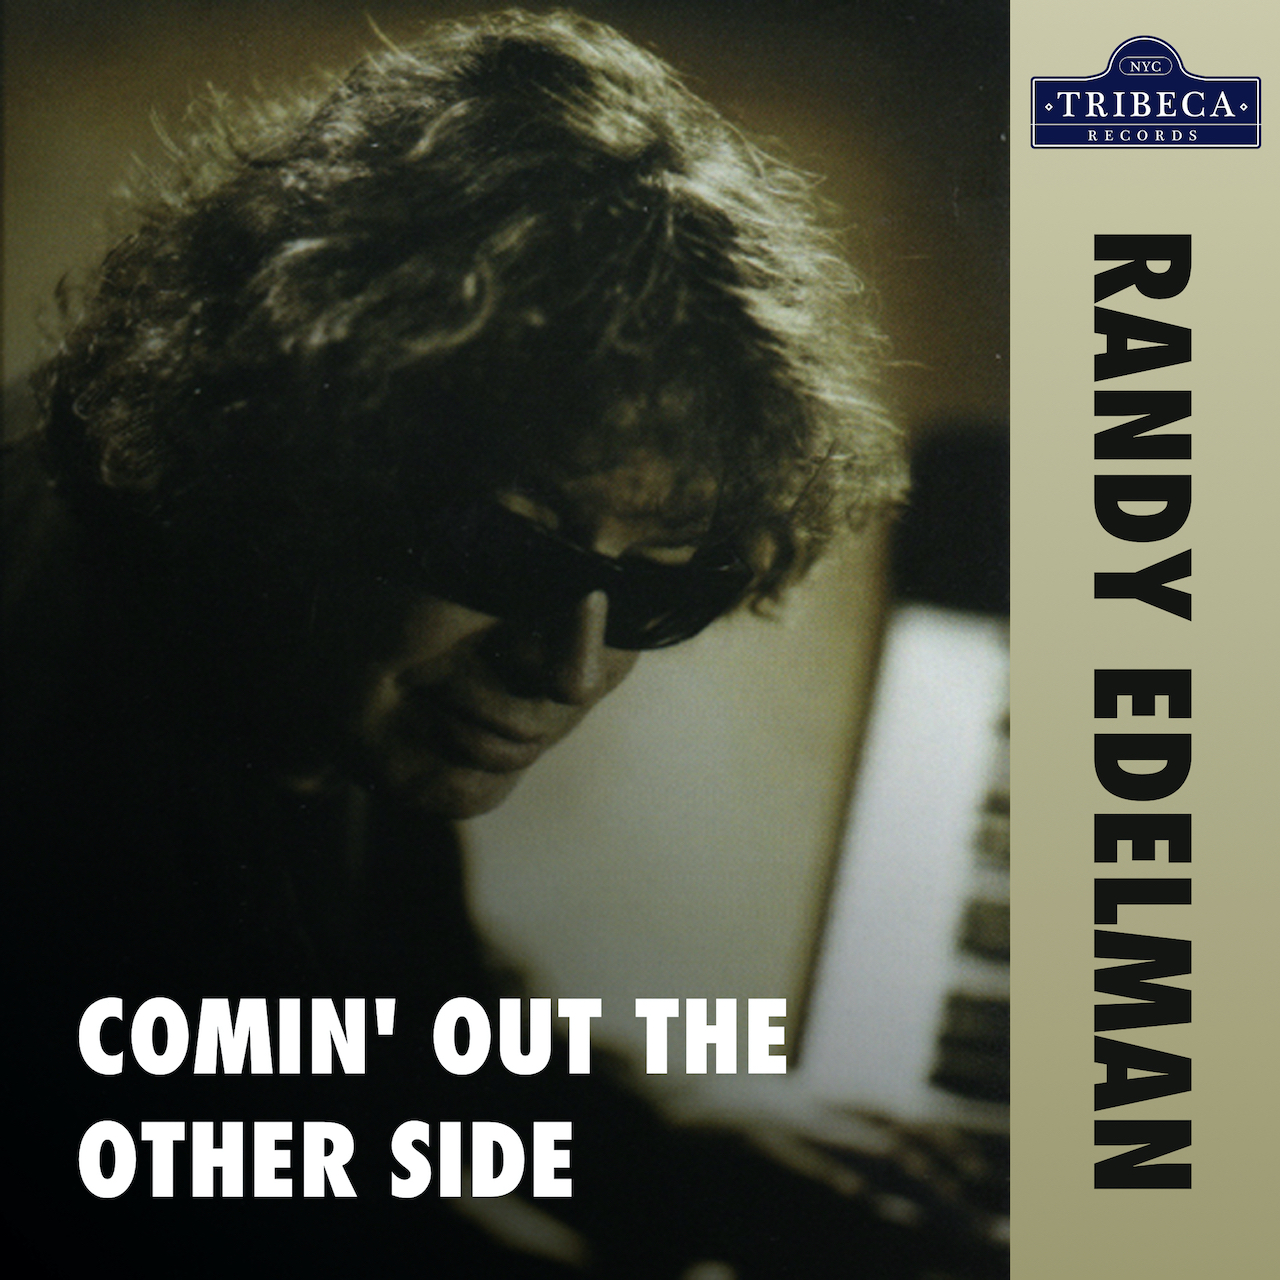 """Randy Edelman's Highly Anticipated New Single """"Comin' Out The Other Side"""" Now Available Worldwide on Tribeca Records"""